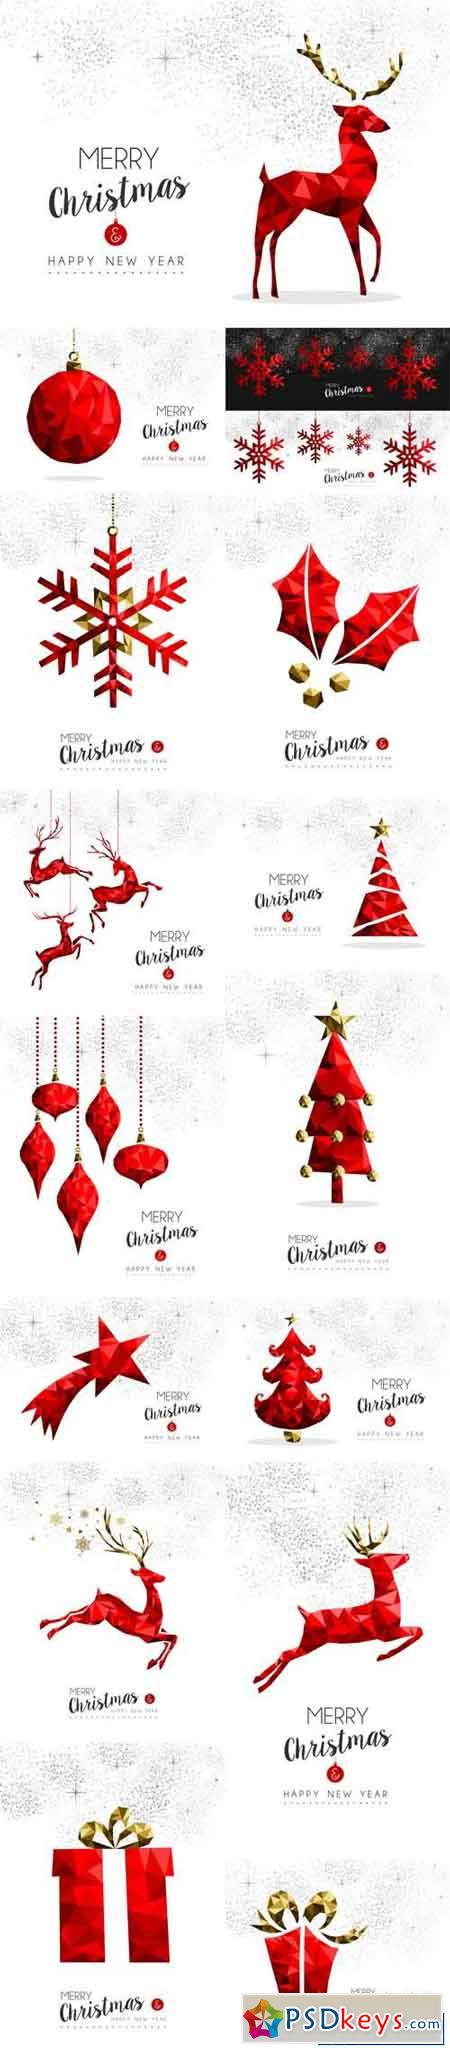 Red Christmas Tree, Deer and Gift Decoration for Greeting Card